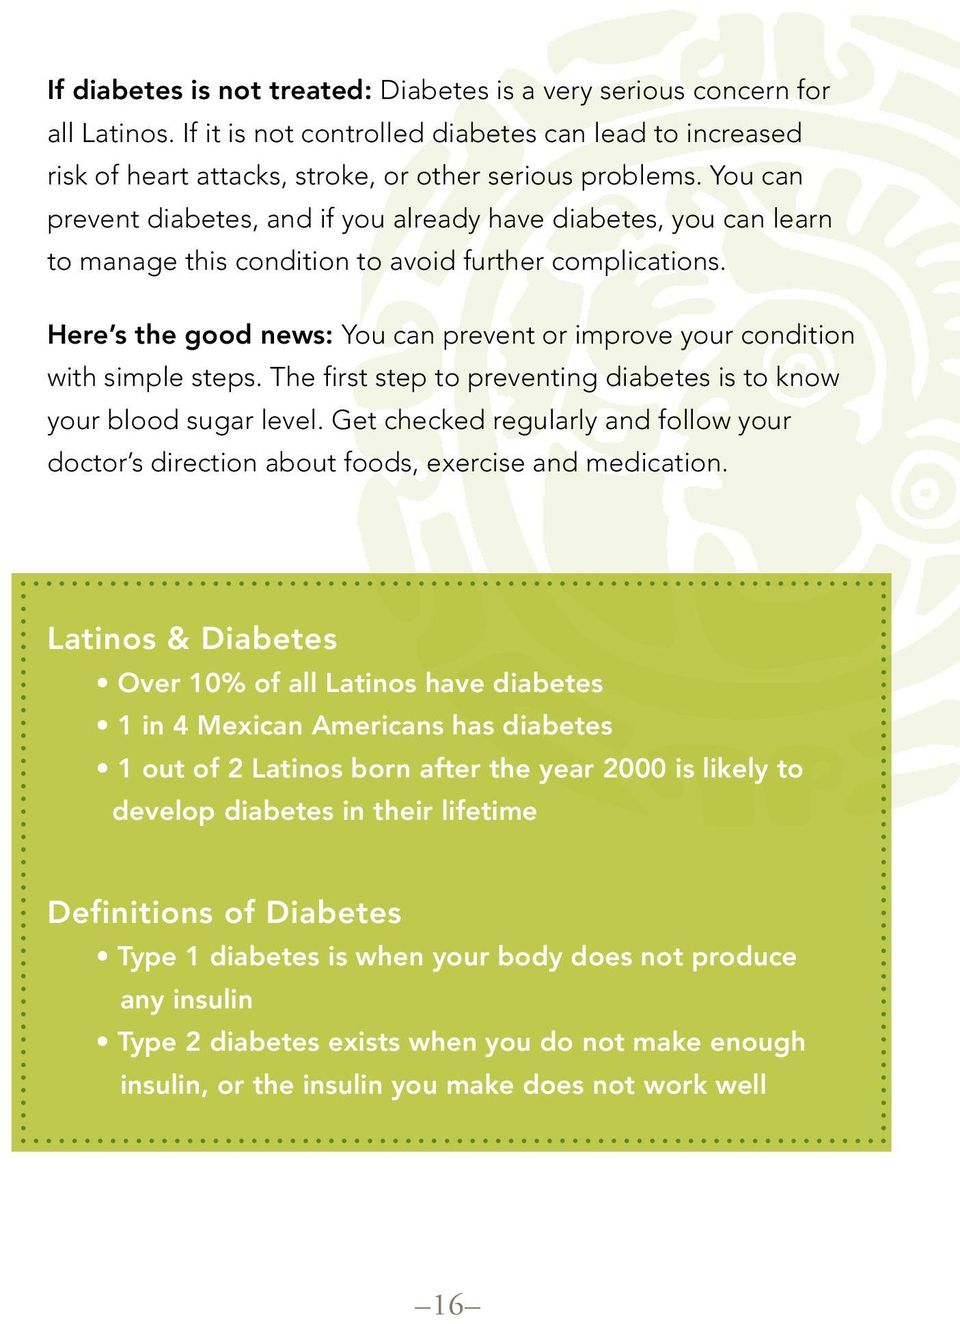 Here s the good news: You can prevent or improve your condition with simple steps. The first step to preventing diabetes is to know your blood sugar level.